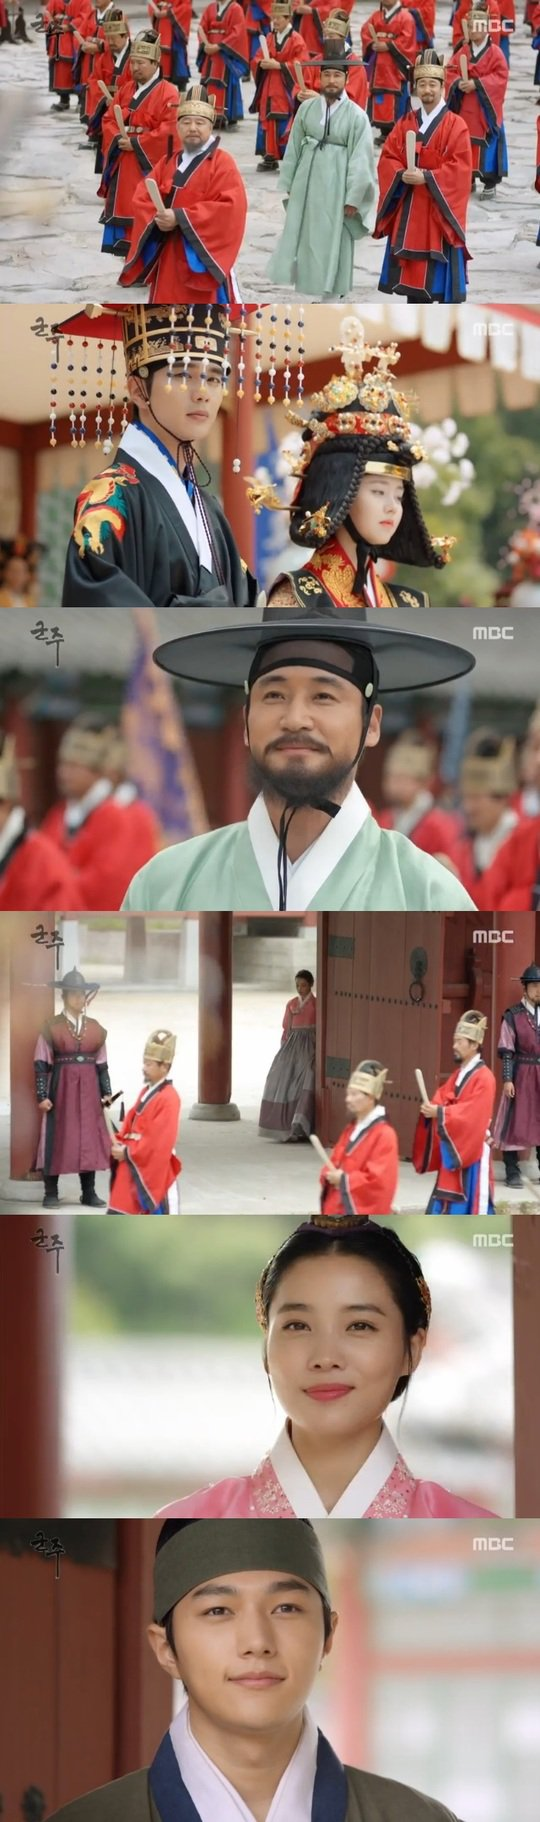 """[Spoiler] """"Ruler: Master of the Mask"""" Jeon No-min and Yoon So-hee reappear"""